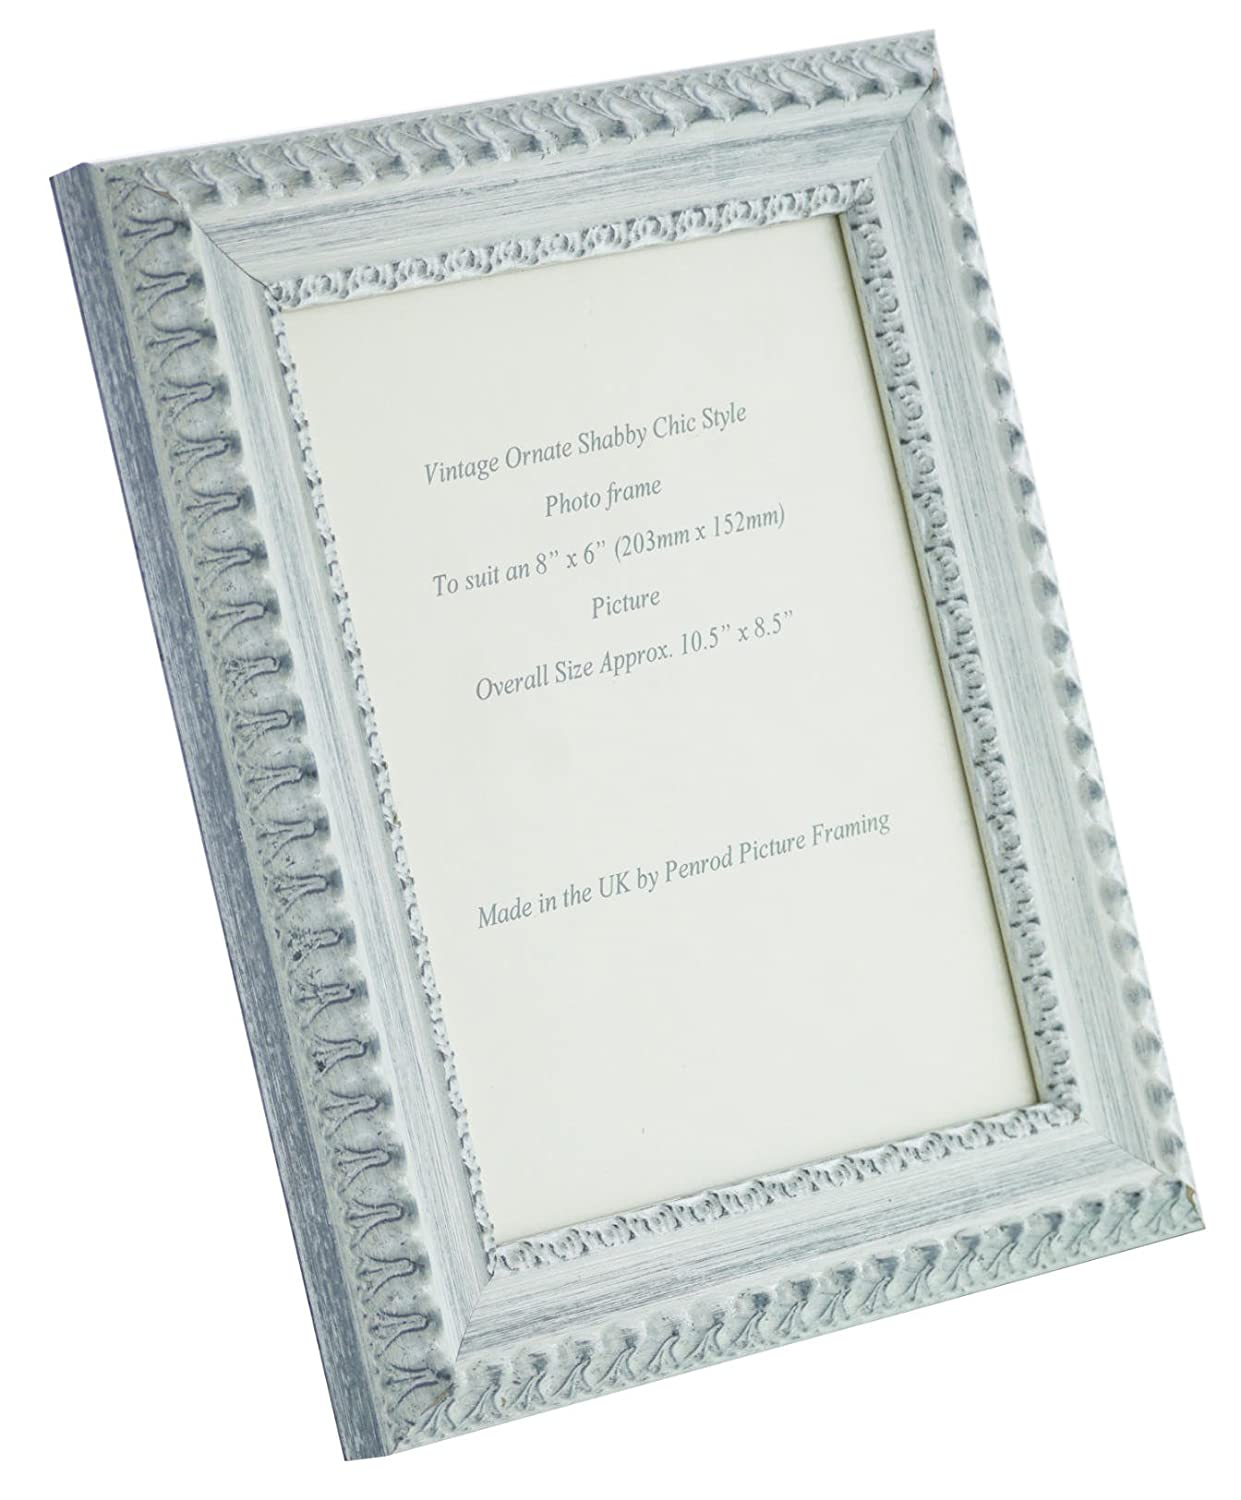 Shabby Chic White Ornate Picture Frame 8 x 6